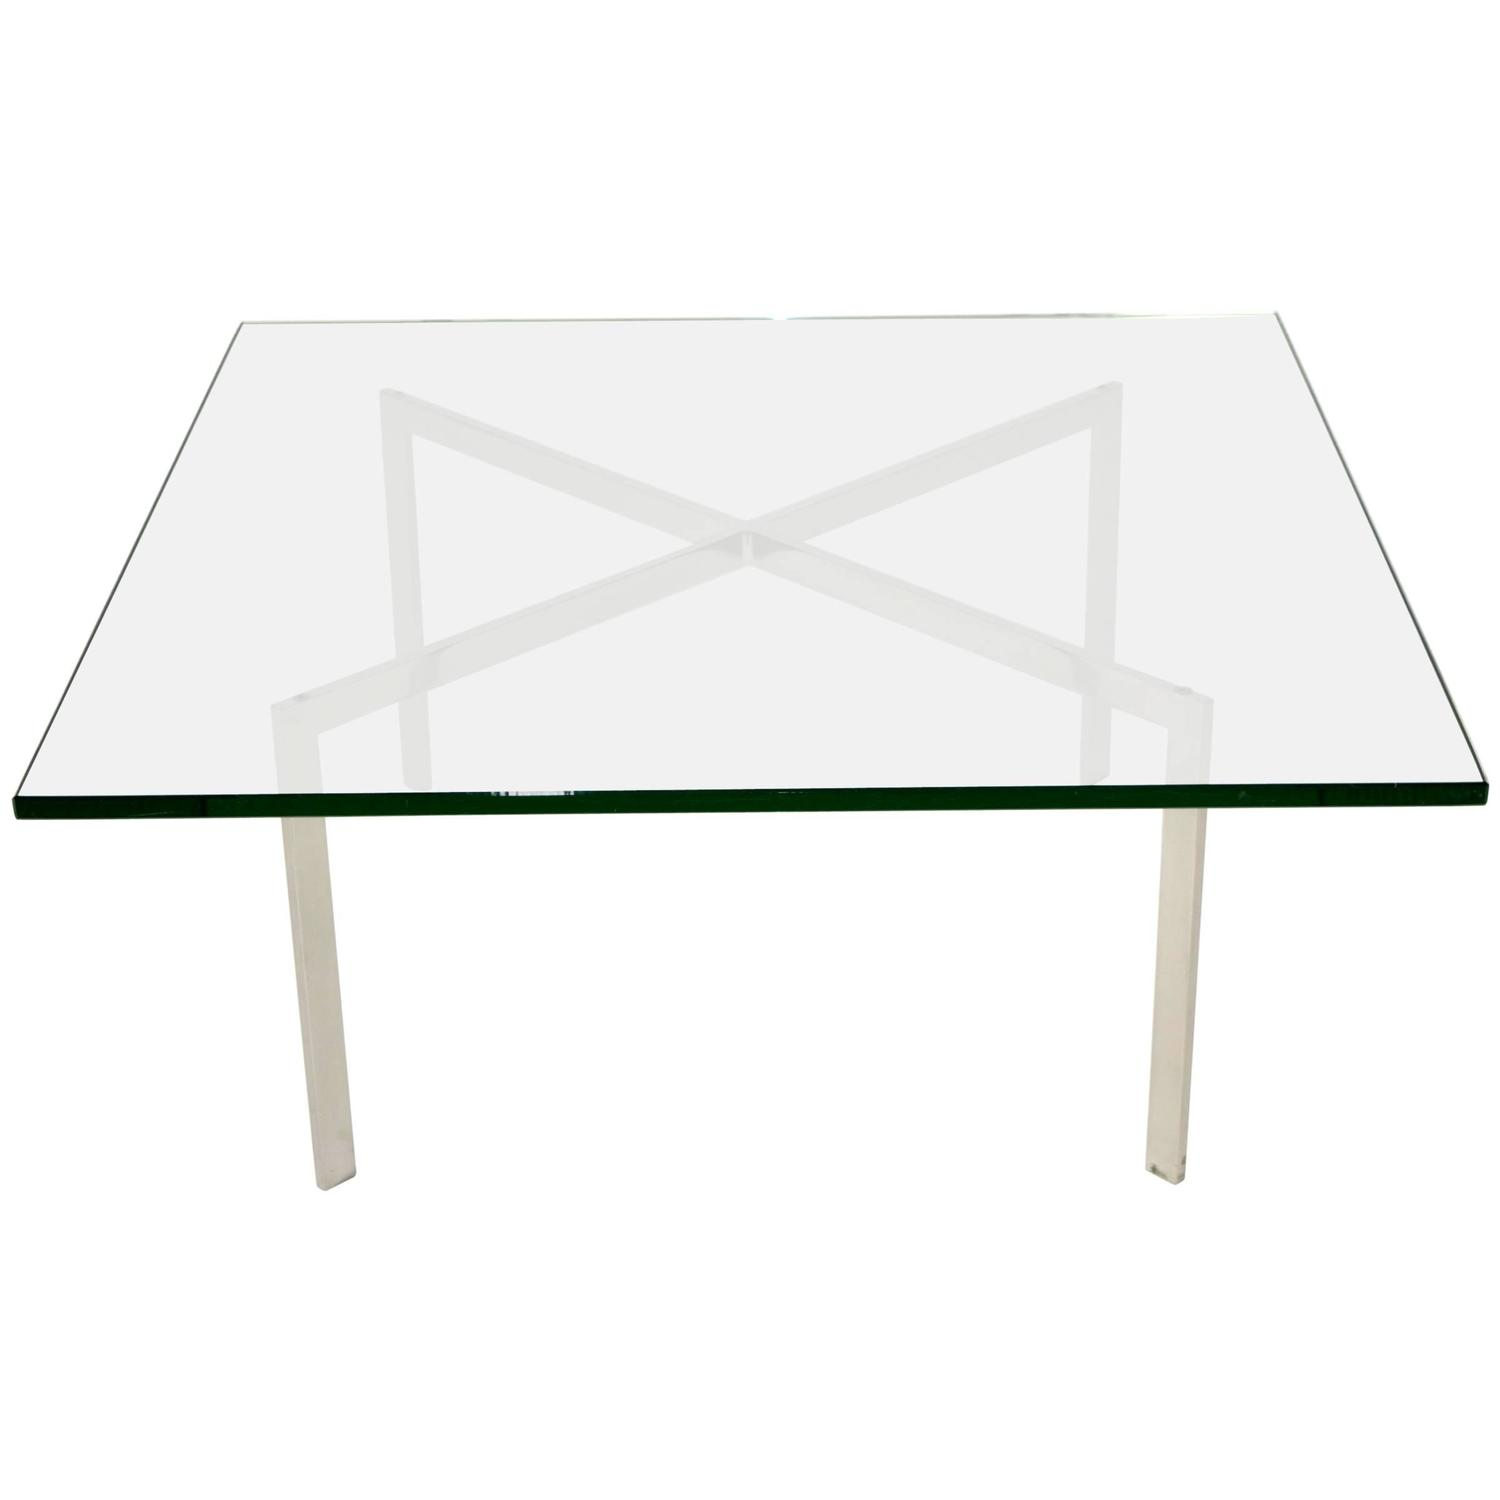 Barcelona Table By Mies Van Der Rohe For Knoll At 1stdibs